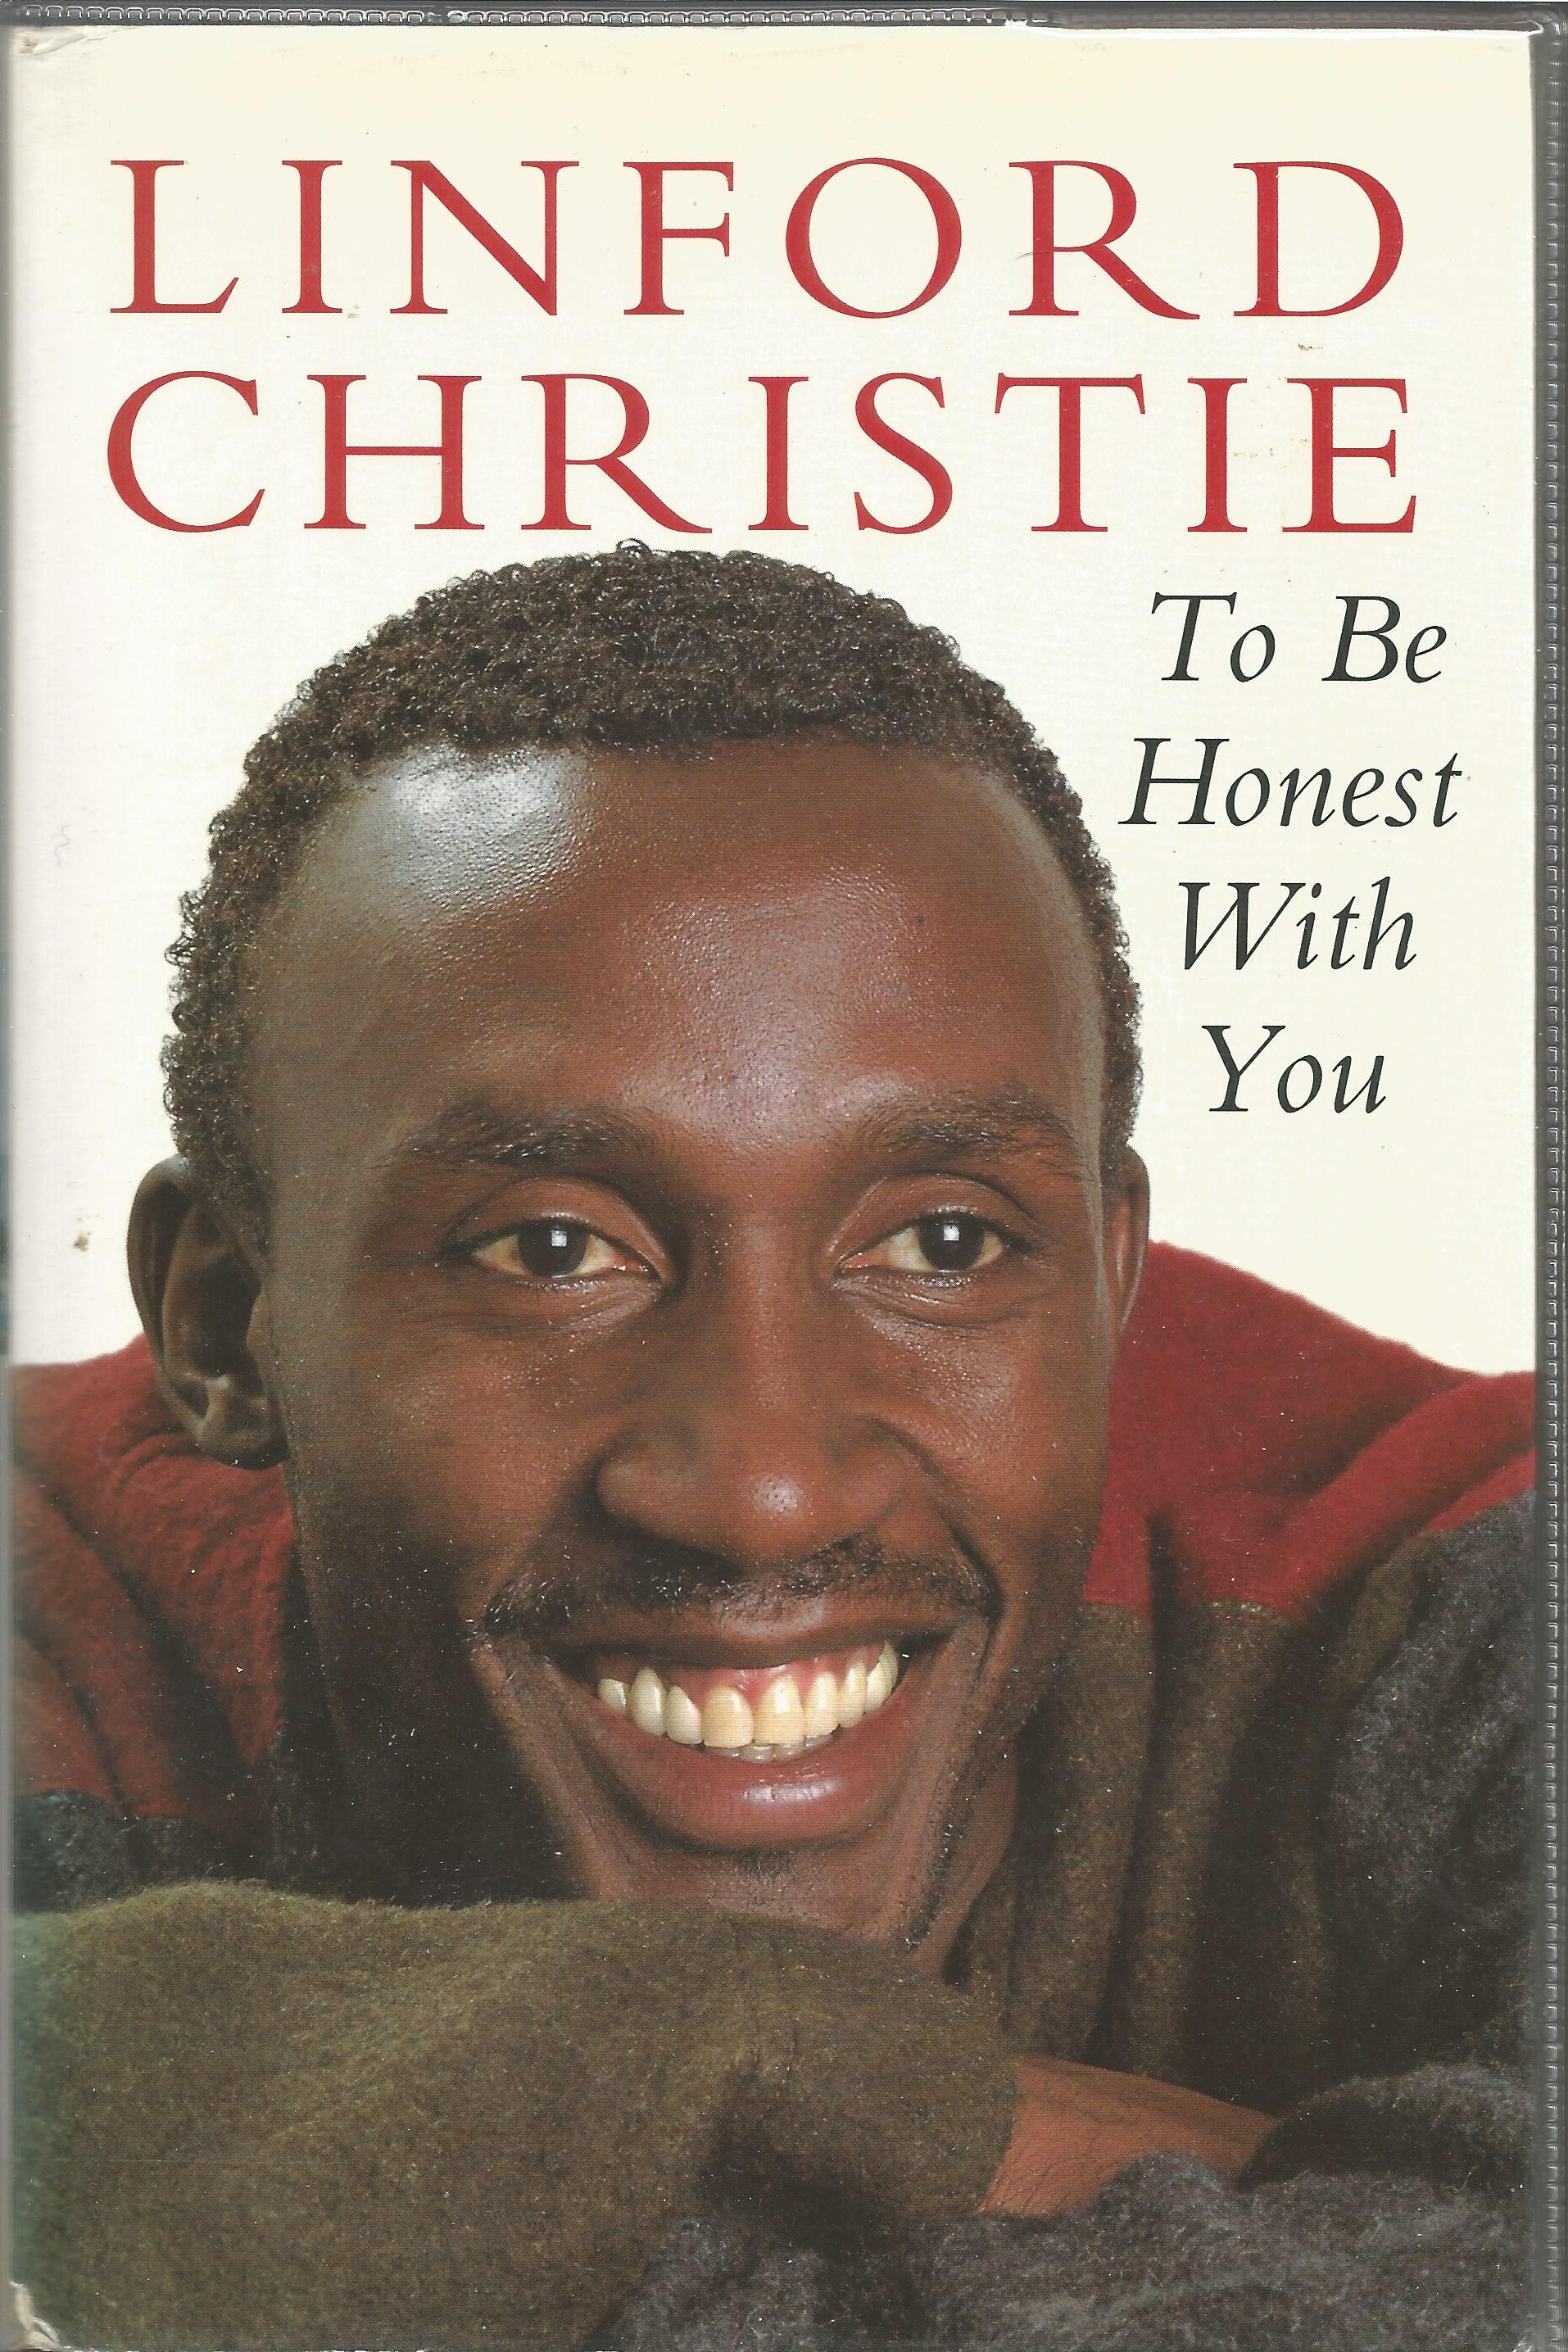 Lot 58 - Athletics Linford Christie signed autobiography To Be Honest With You. Signed on title page. Hard